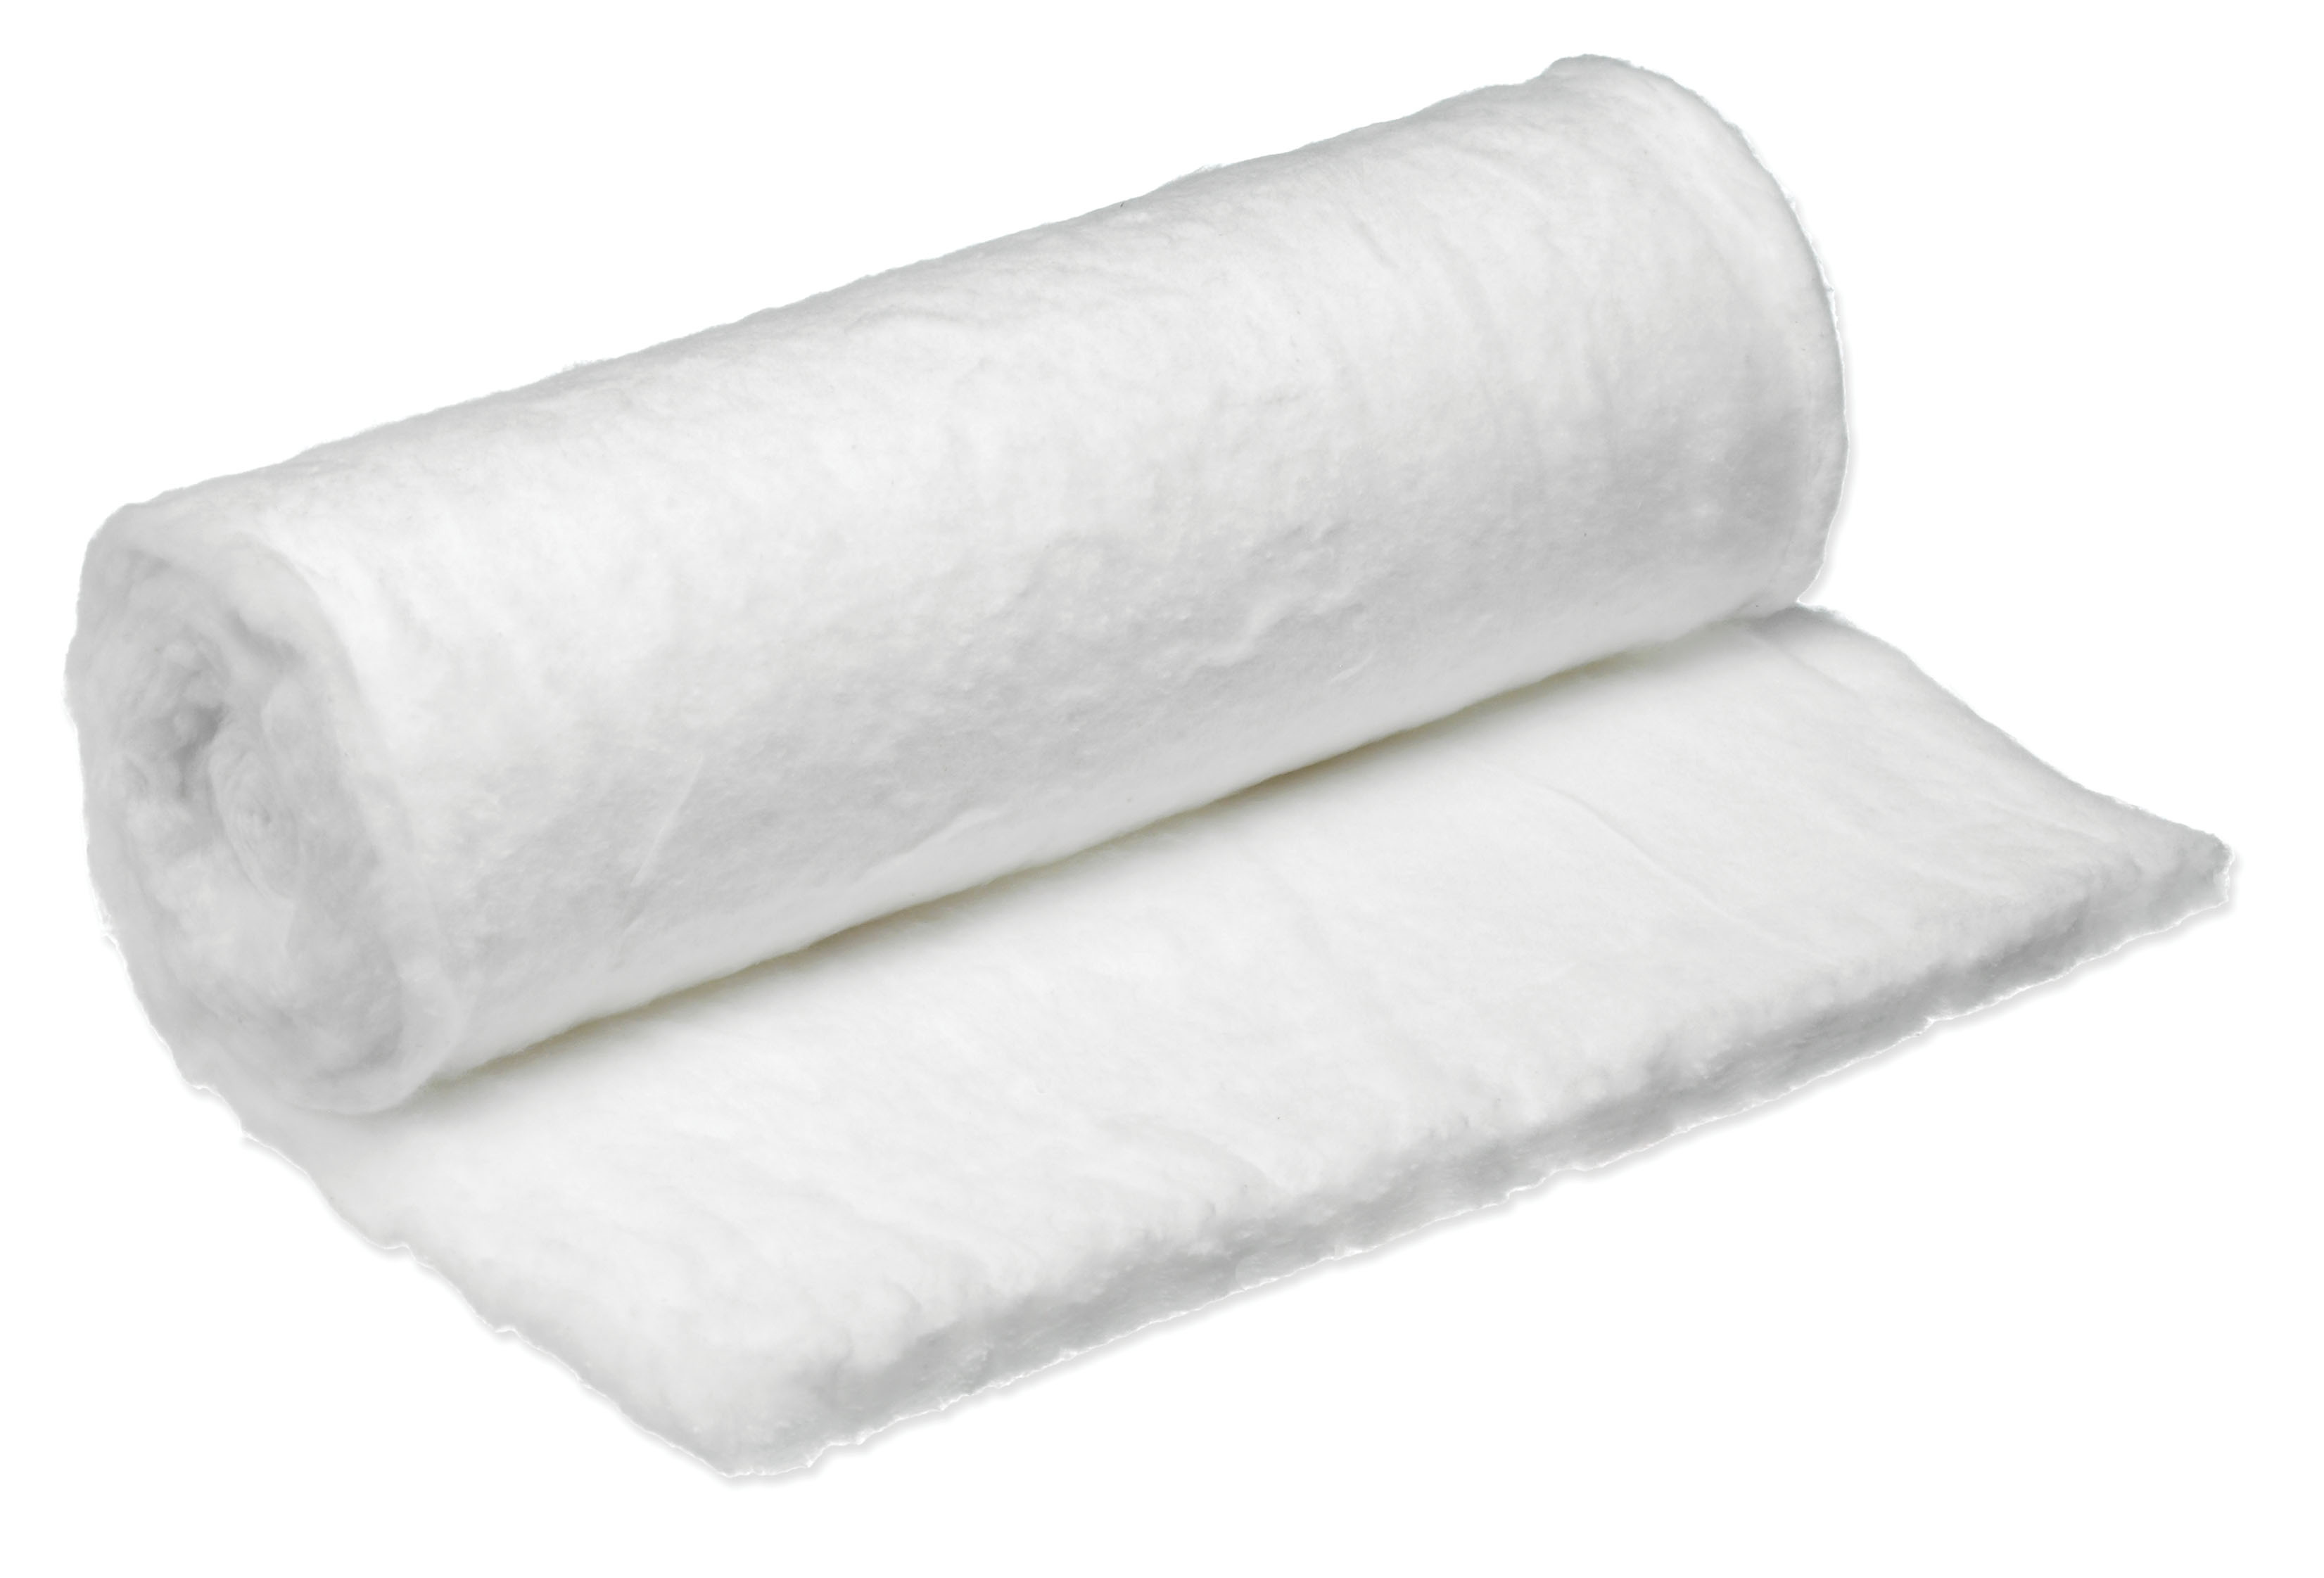 Cotton Wool Rolls 500g